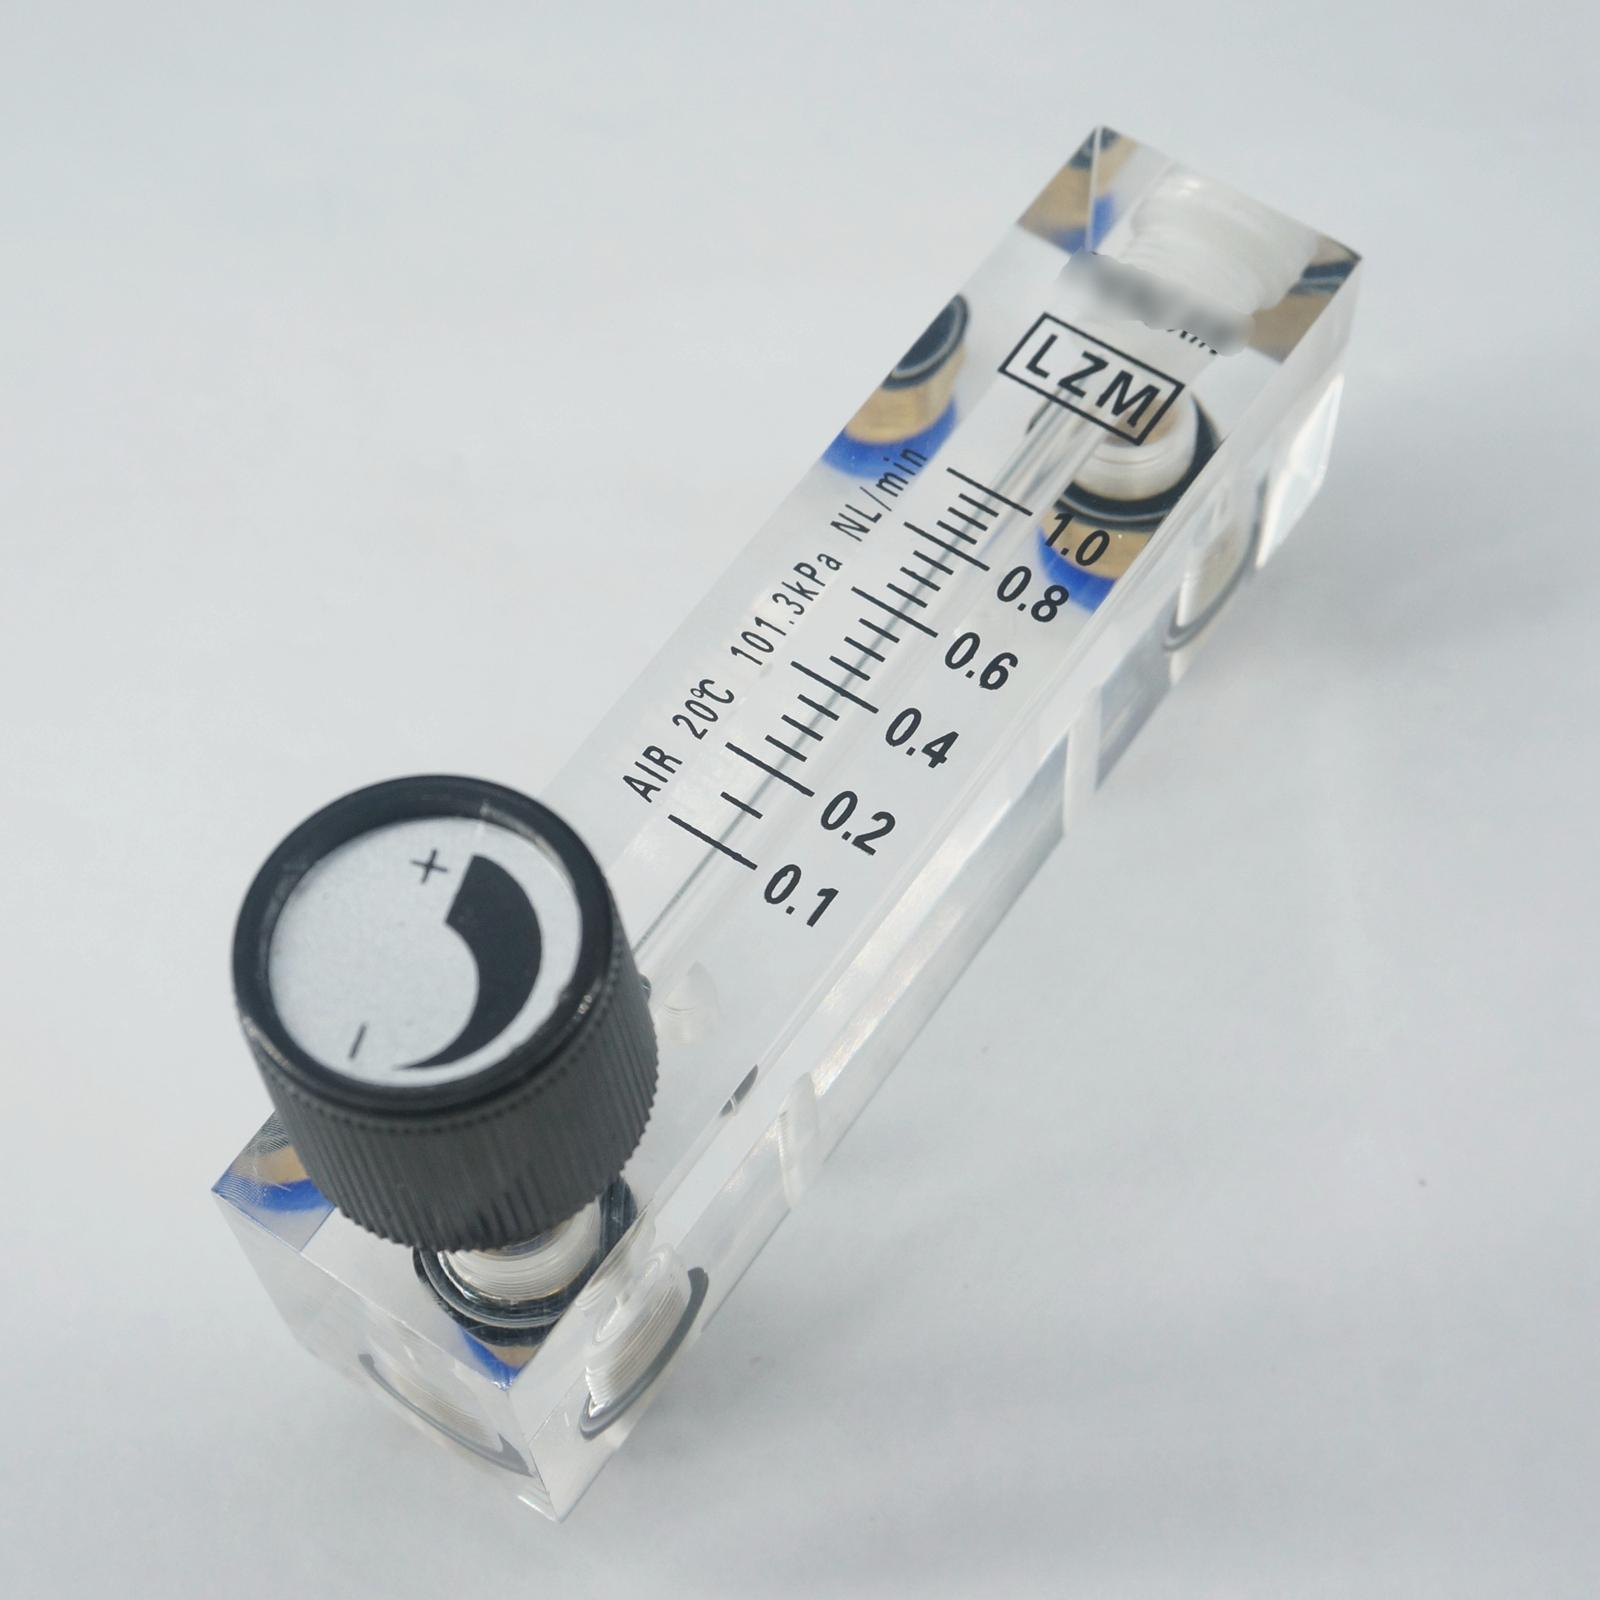 0,1-1lpm Lzm-4t Acryl Panel Panel Air Durchflussmesser Rotameter Mit Regelventil Push In Fit 6mm Od Rohr